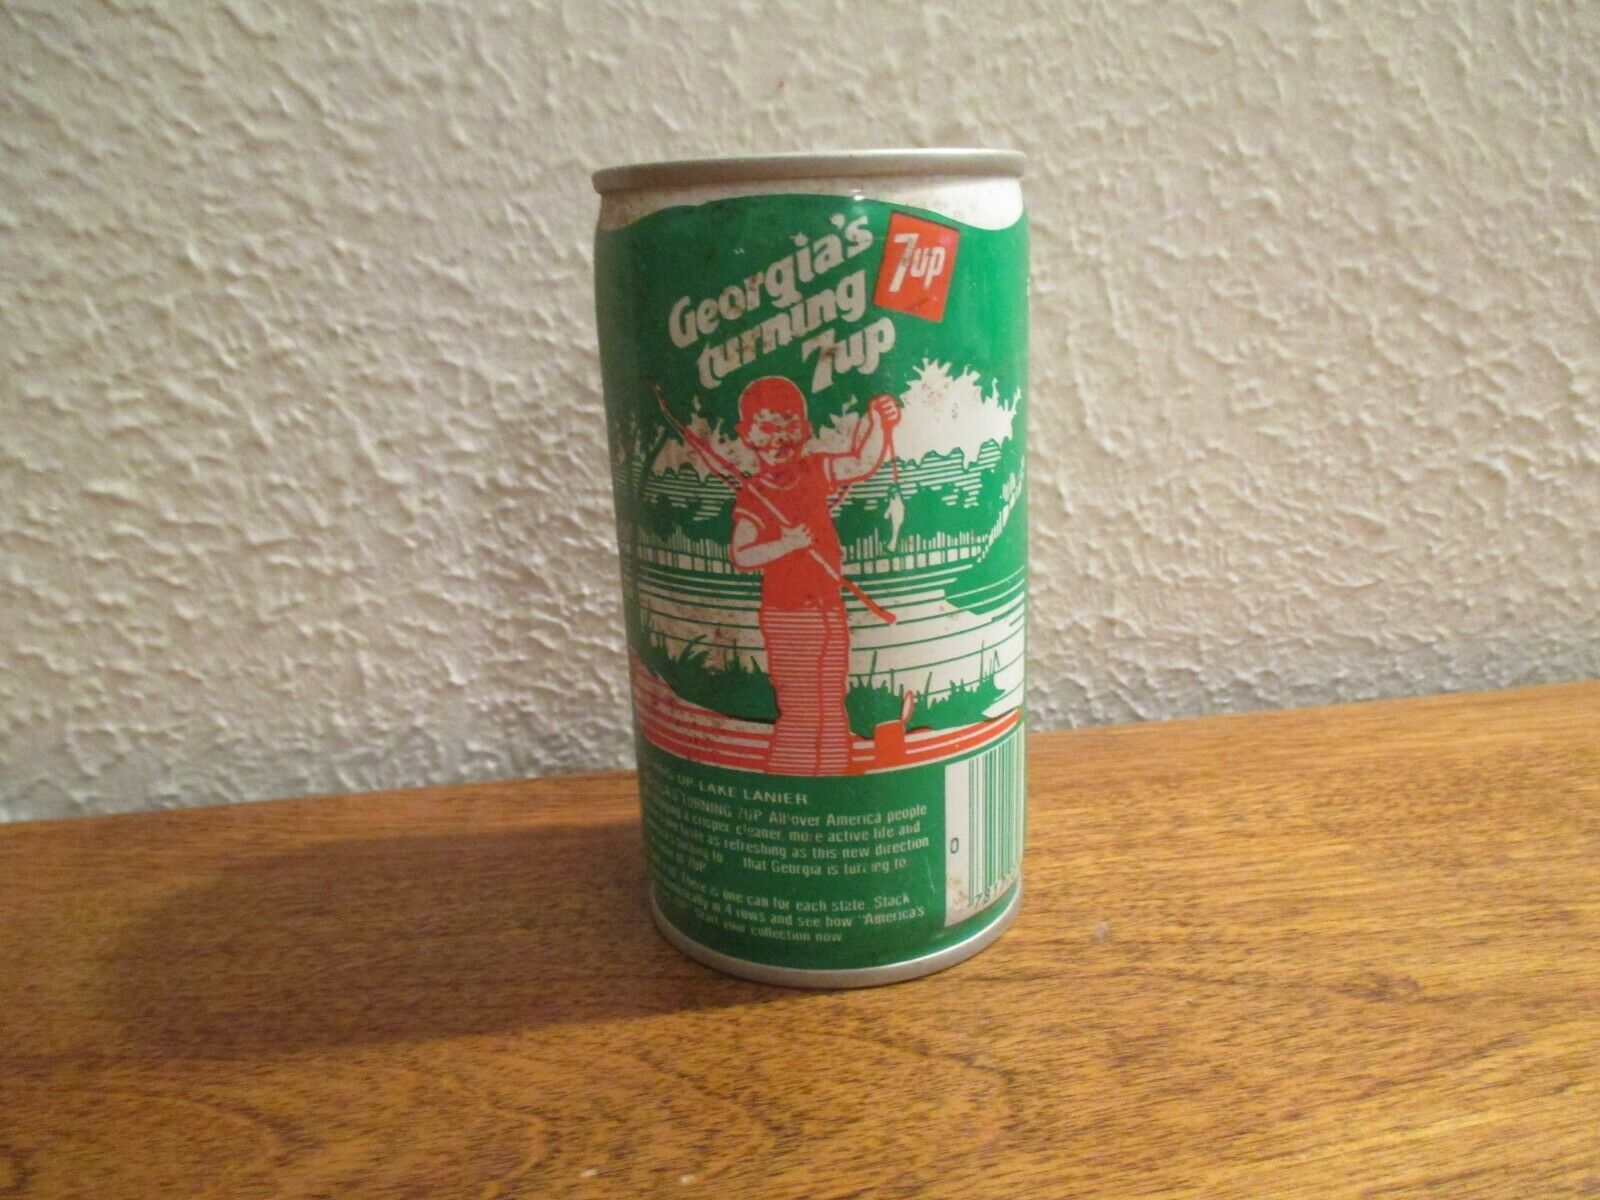 Primary image for Georgia Turning 7up vintage pop soda metal can Lake Lanier fishing